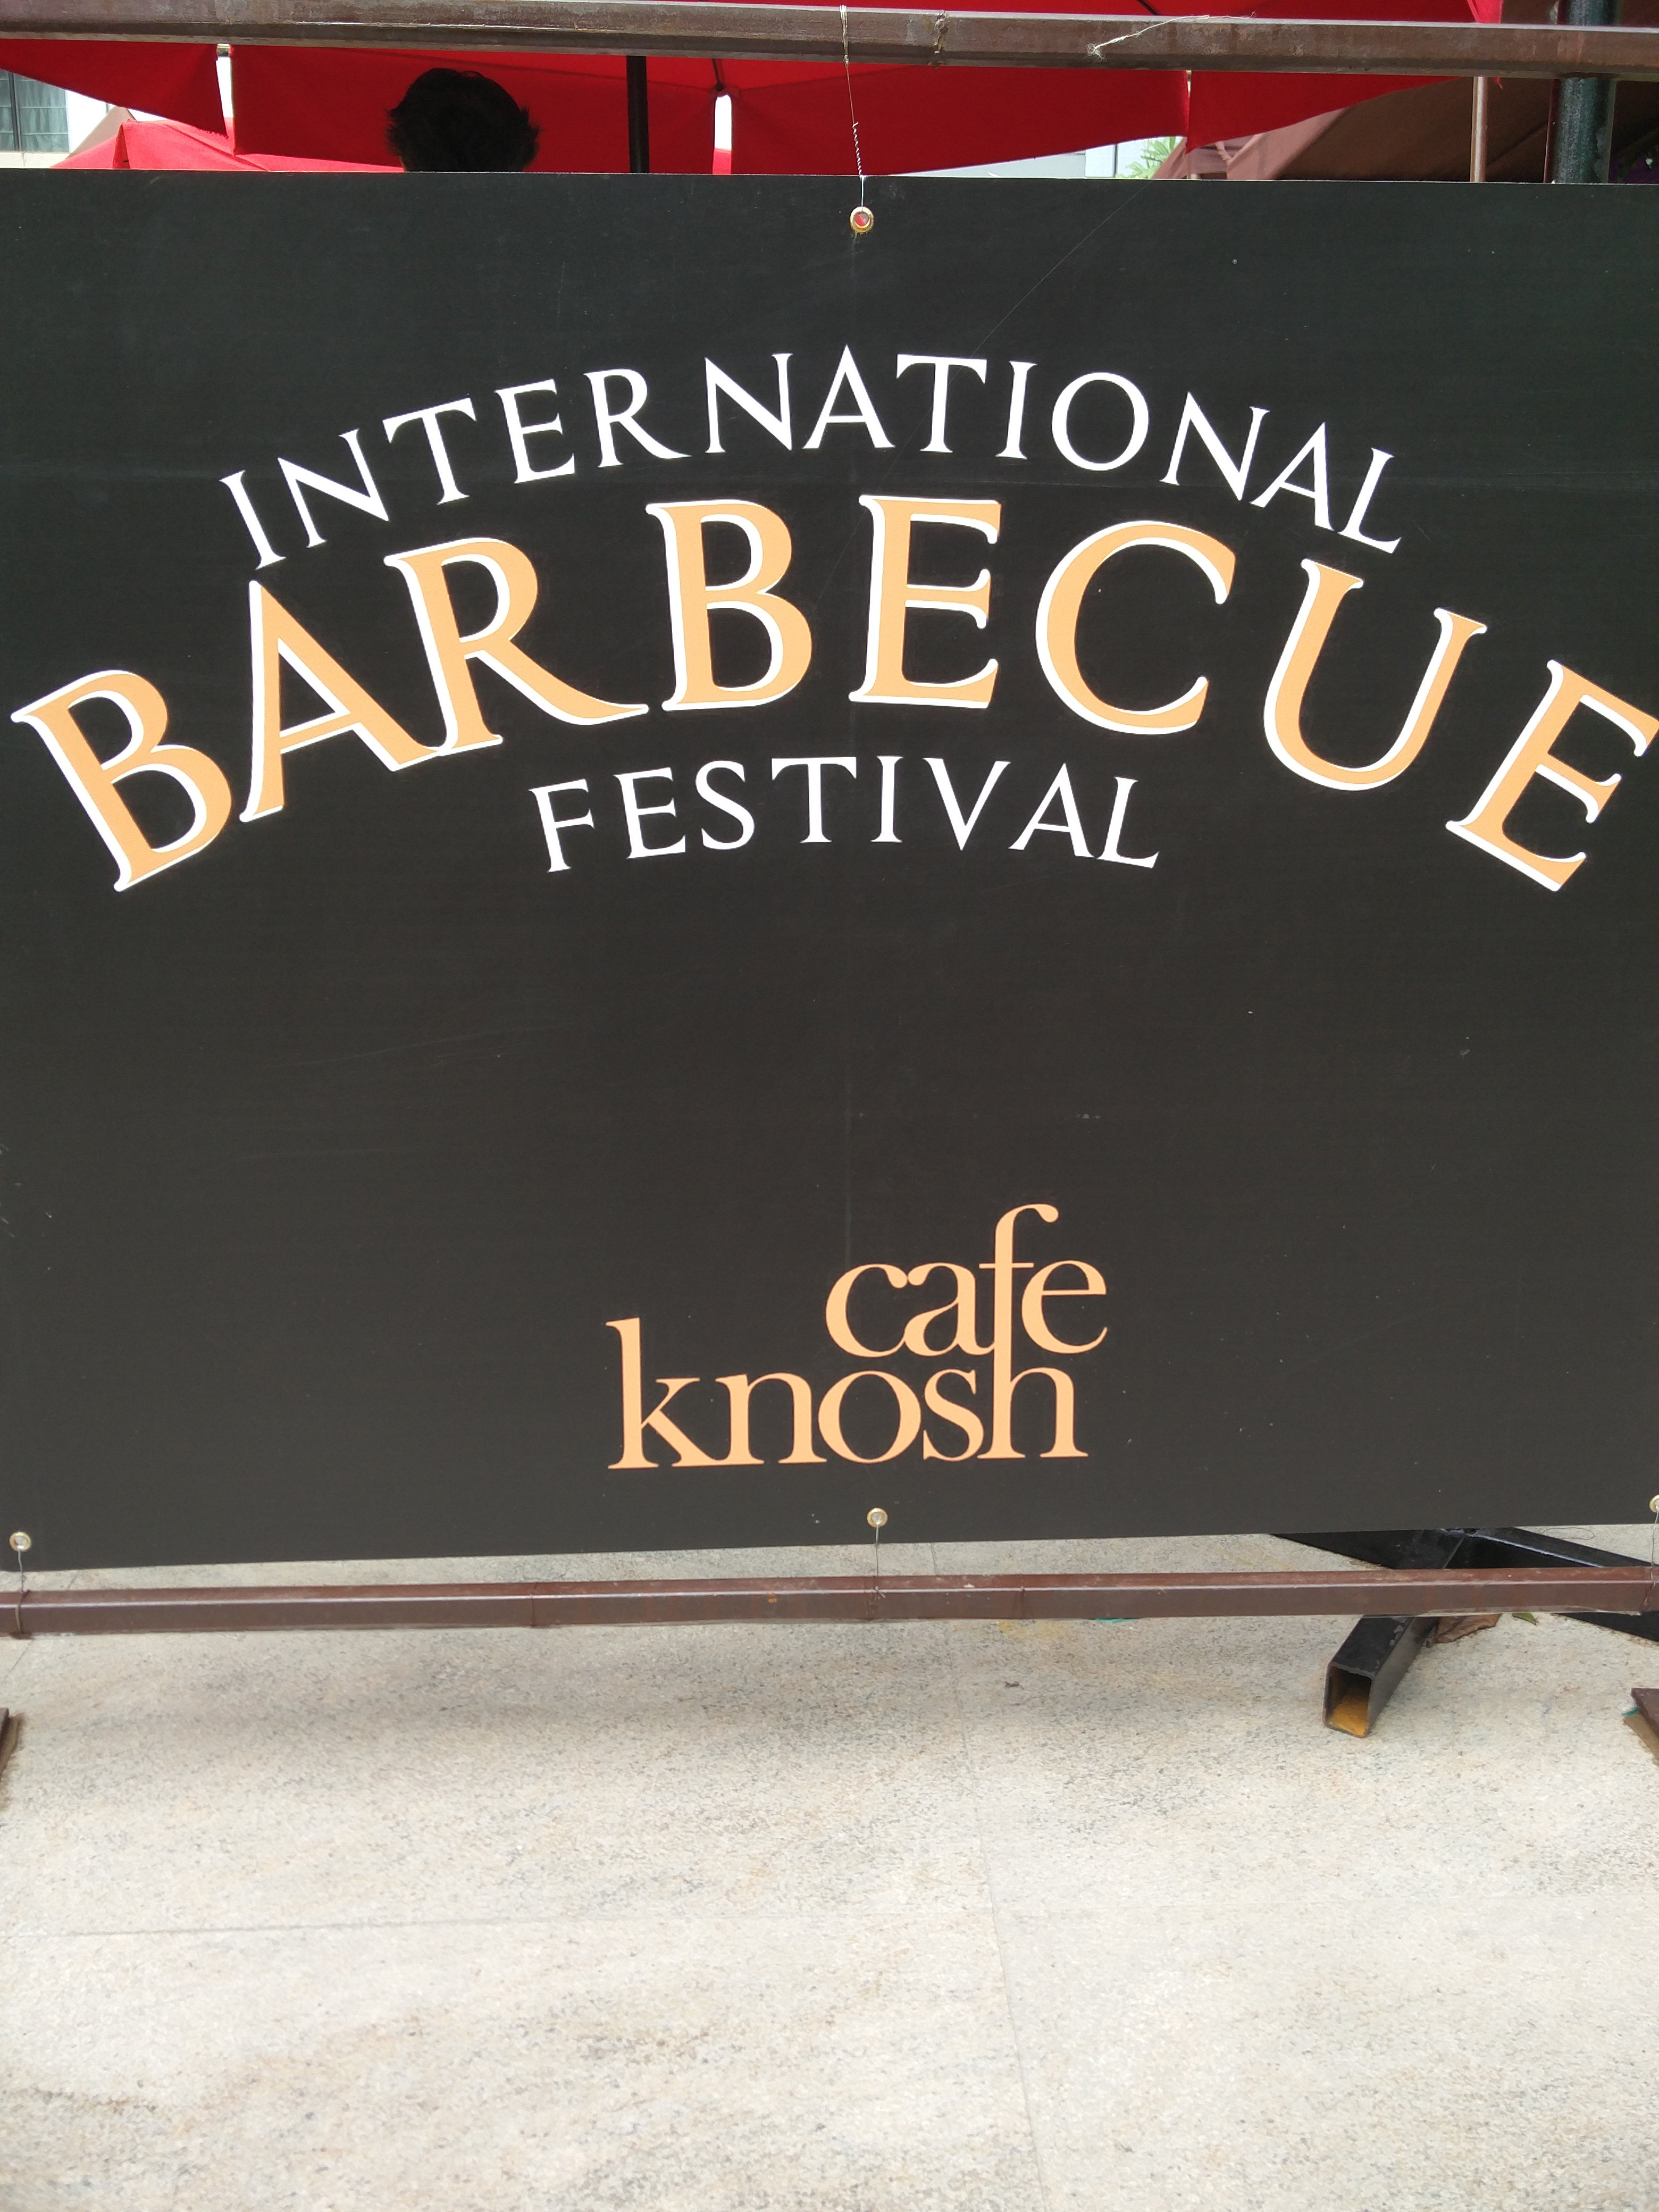 International Barbecue Festival by Cafe Knosh